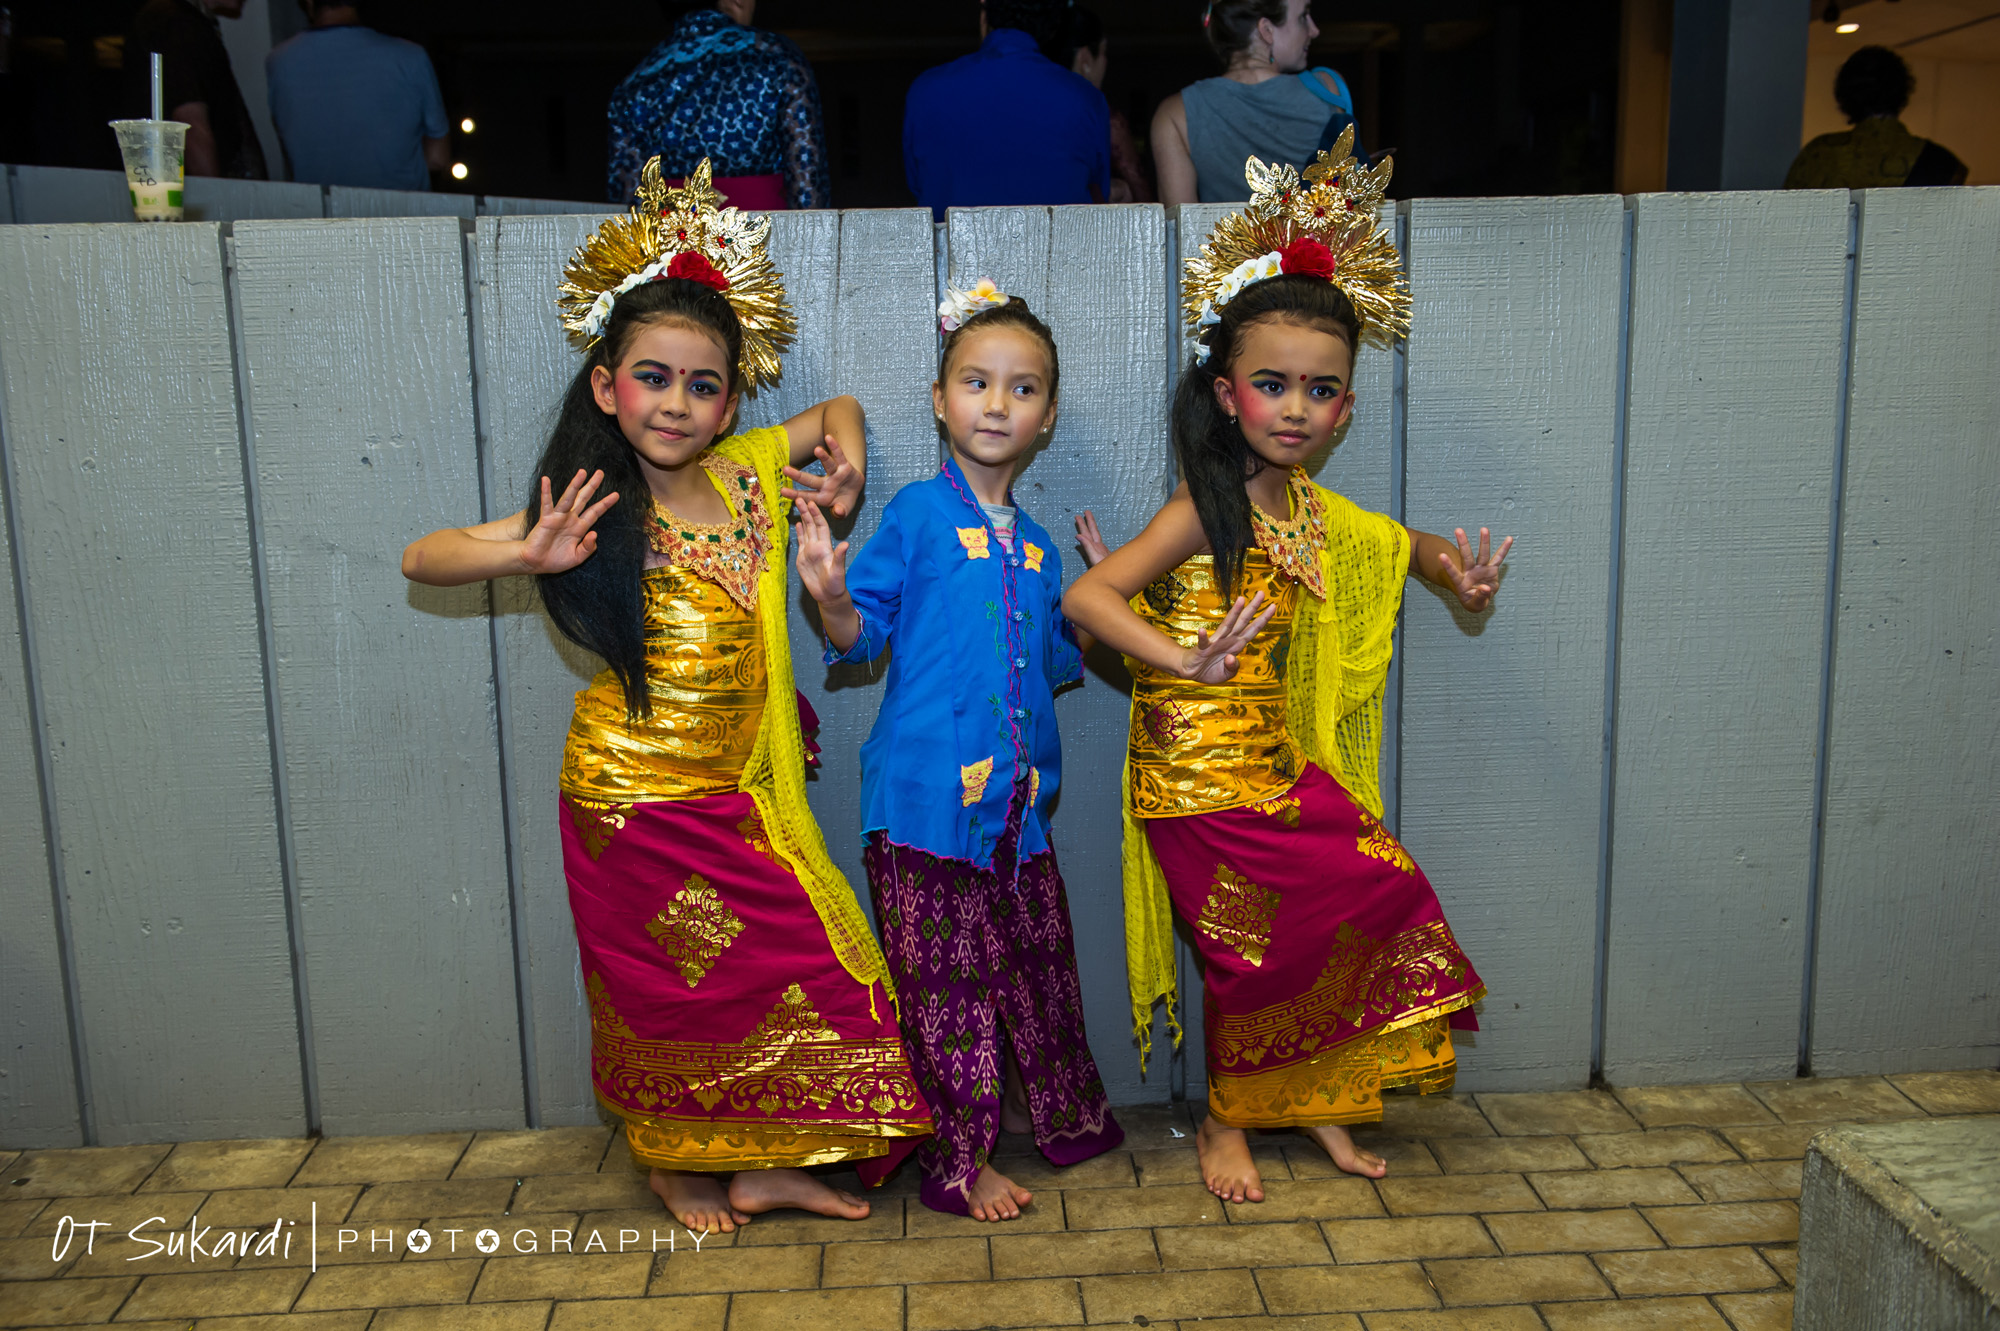 young girl performers pose in costume